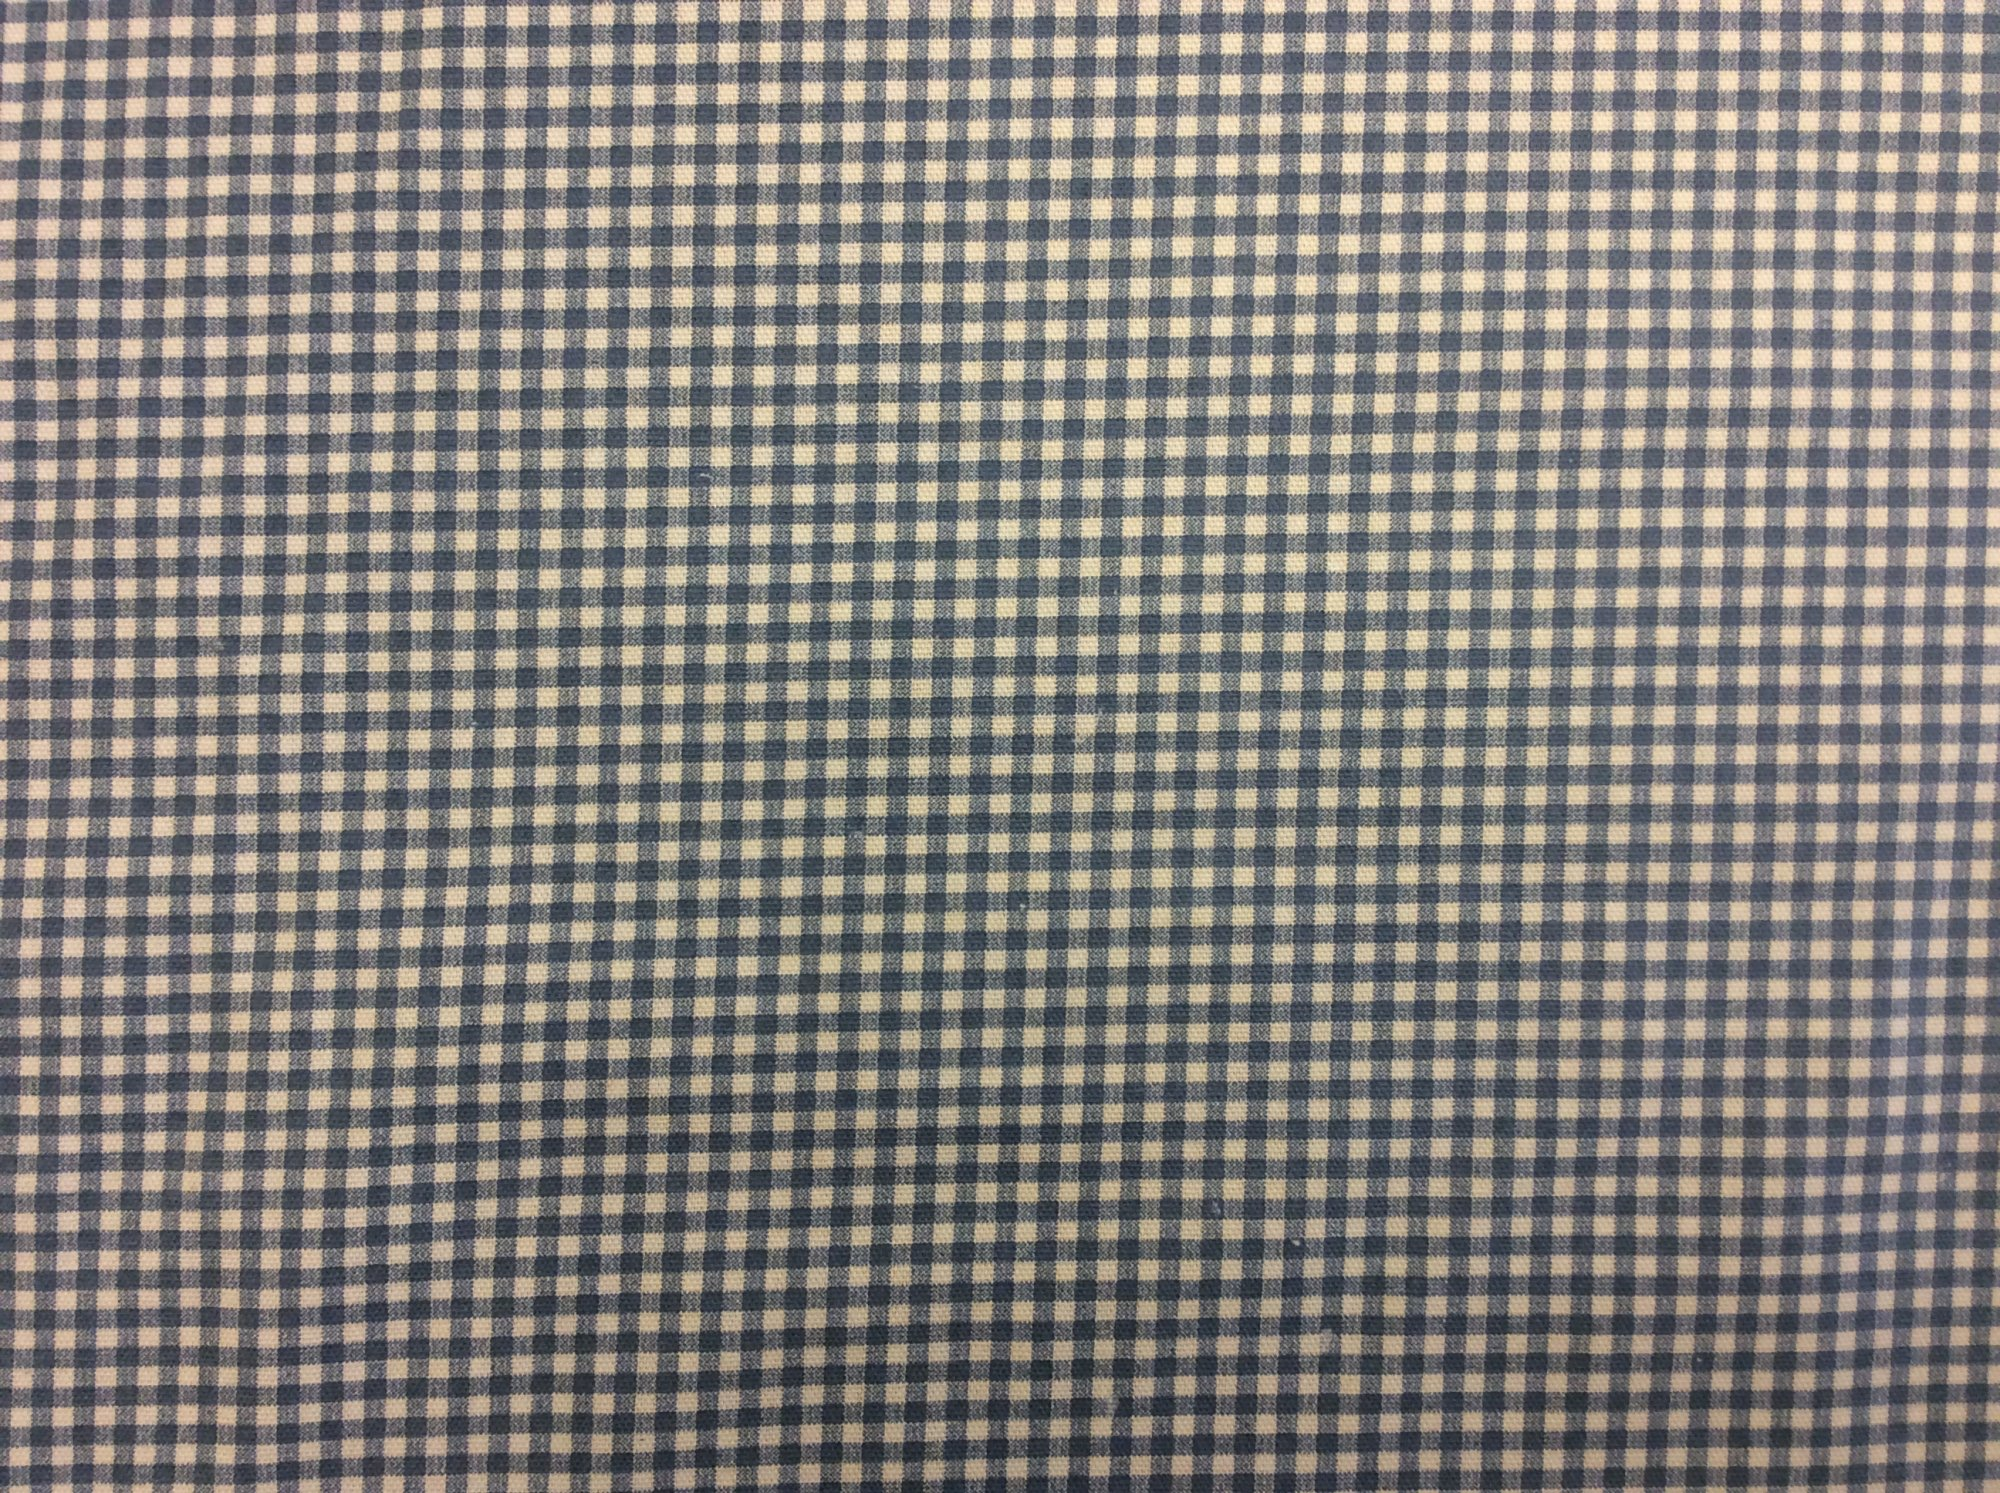 HD715 Classic Gingham Print Cotton Fabric Cheerful Check Blue and Ivory Heavy Weight Cotton Fabric